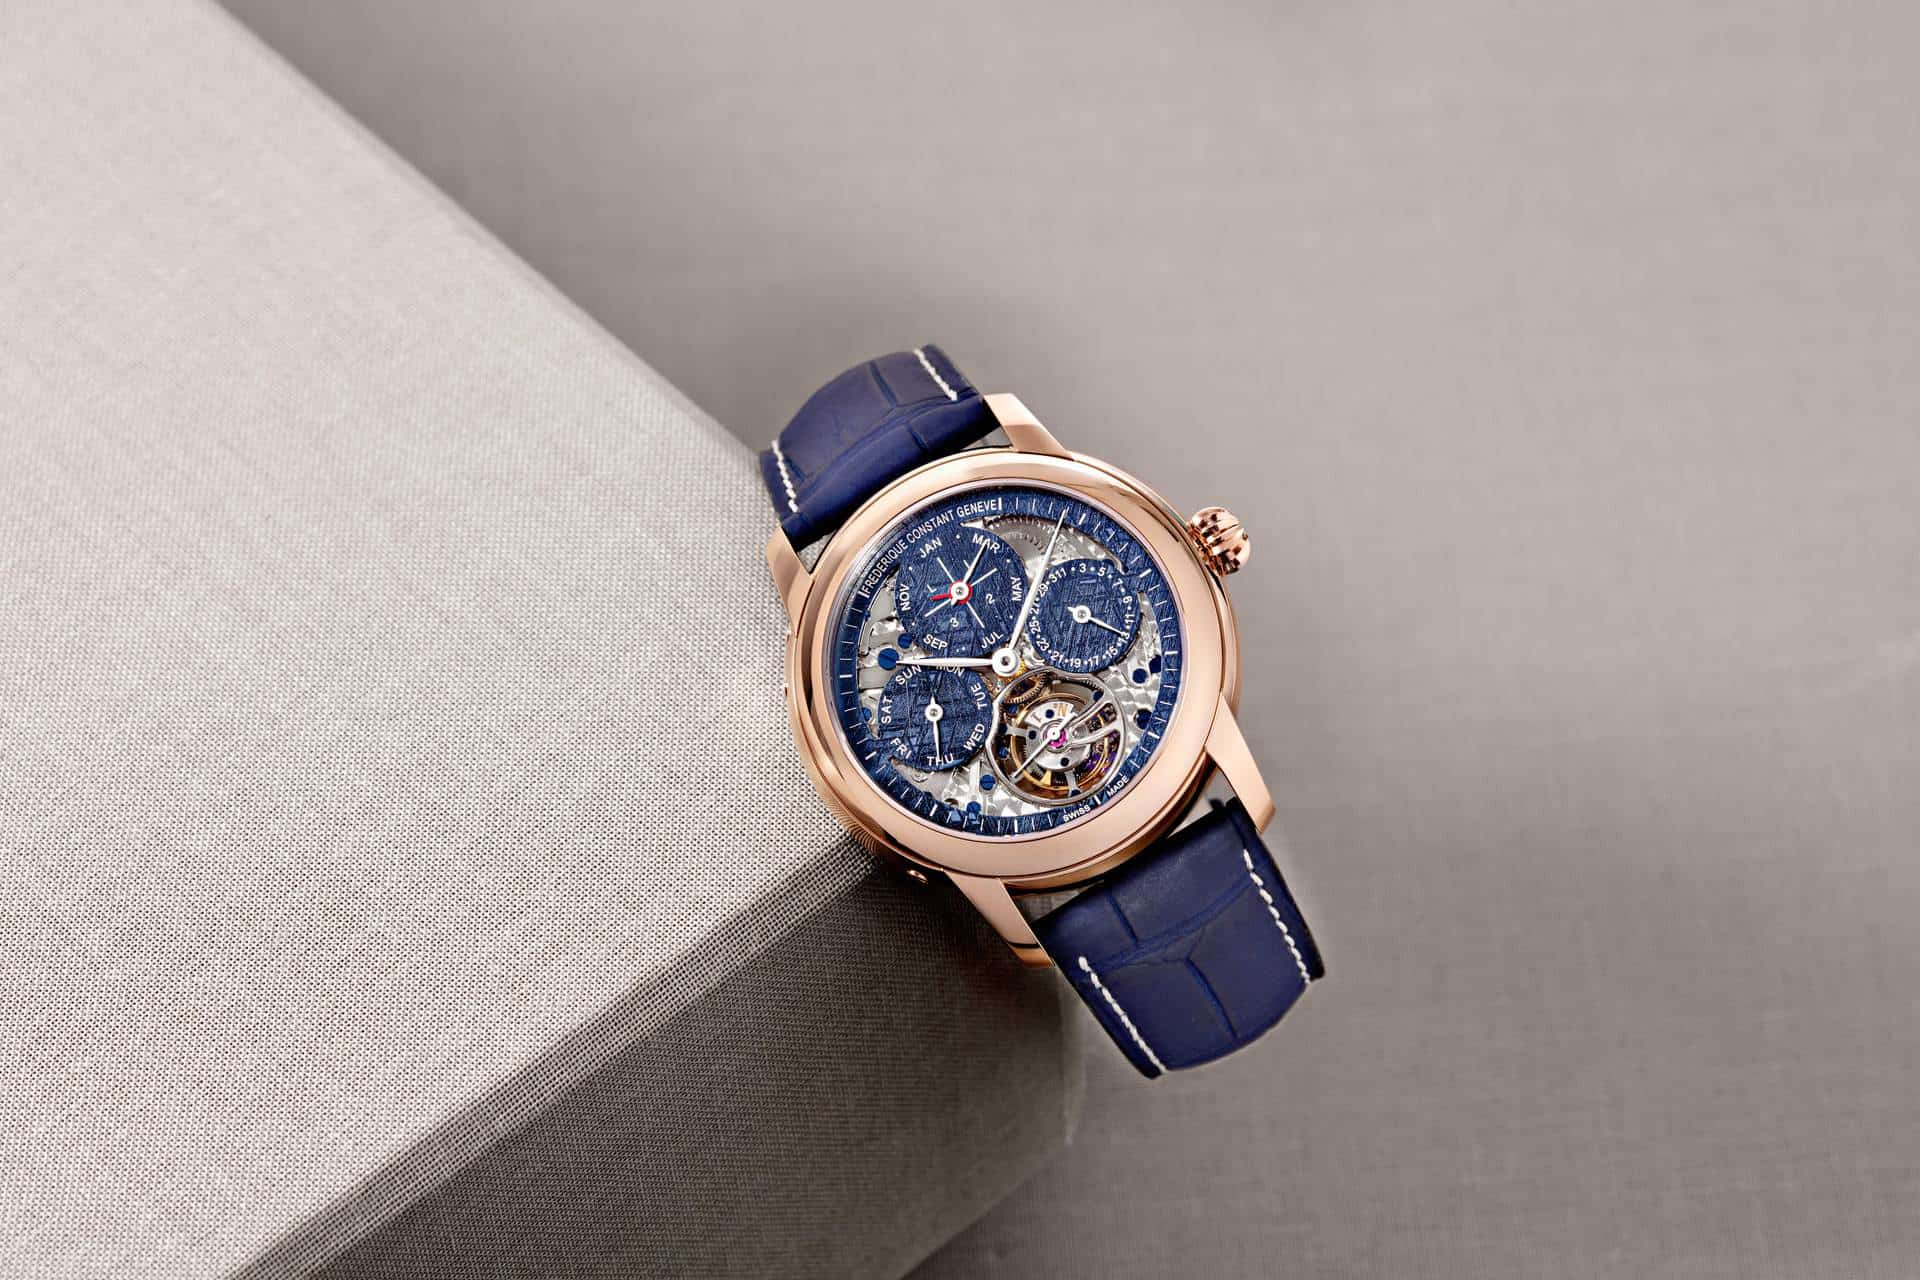 Frederique Constant supports Only Watch with a spectacular Meteorite Tourbillon Perpetual Calendar Manufacture timepiece